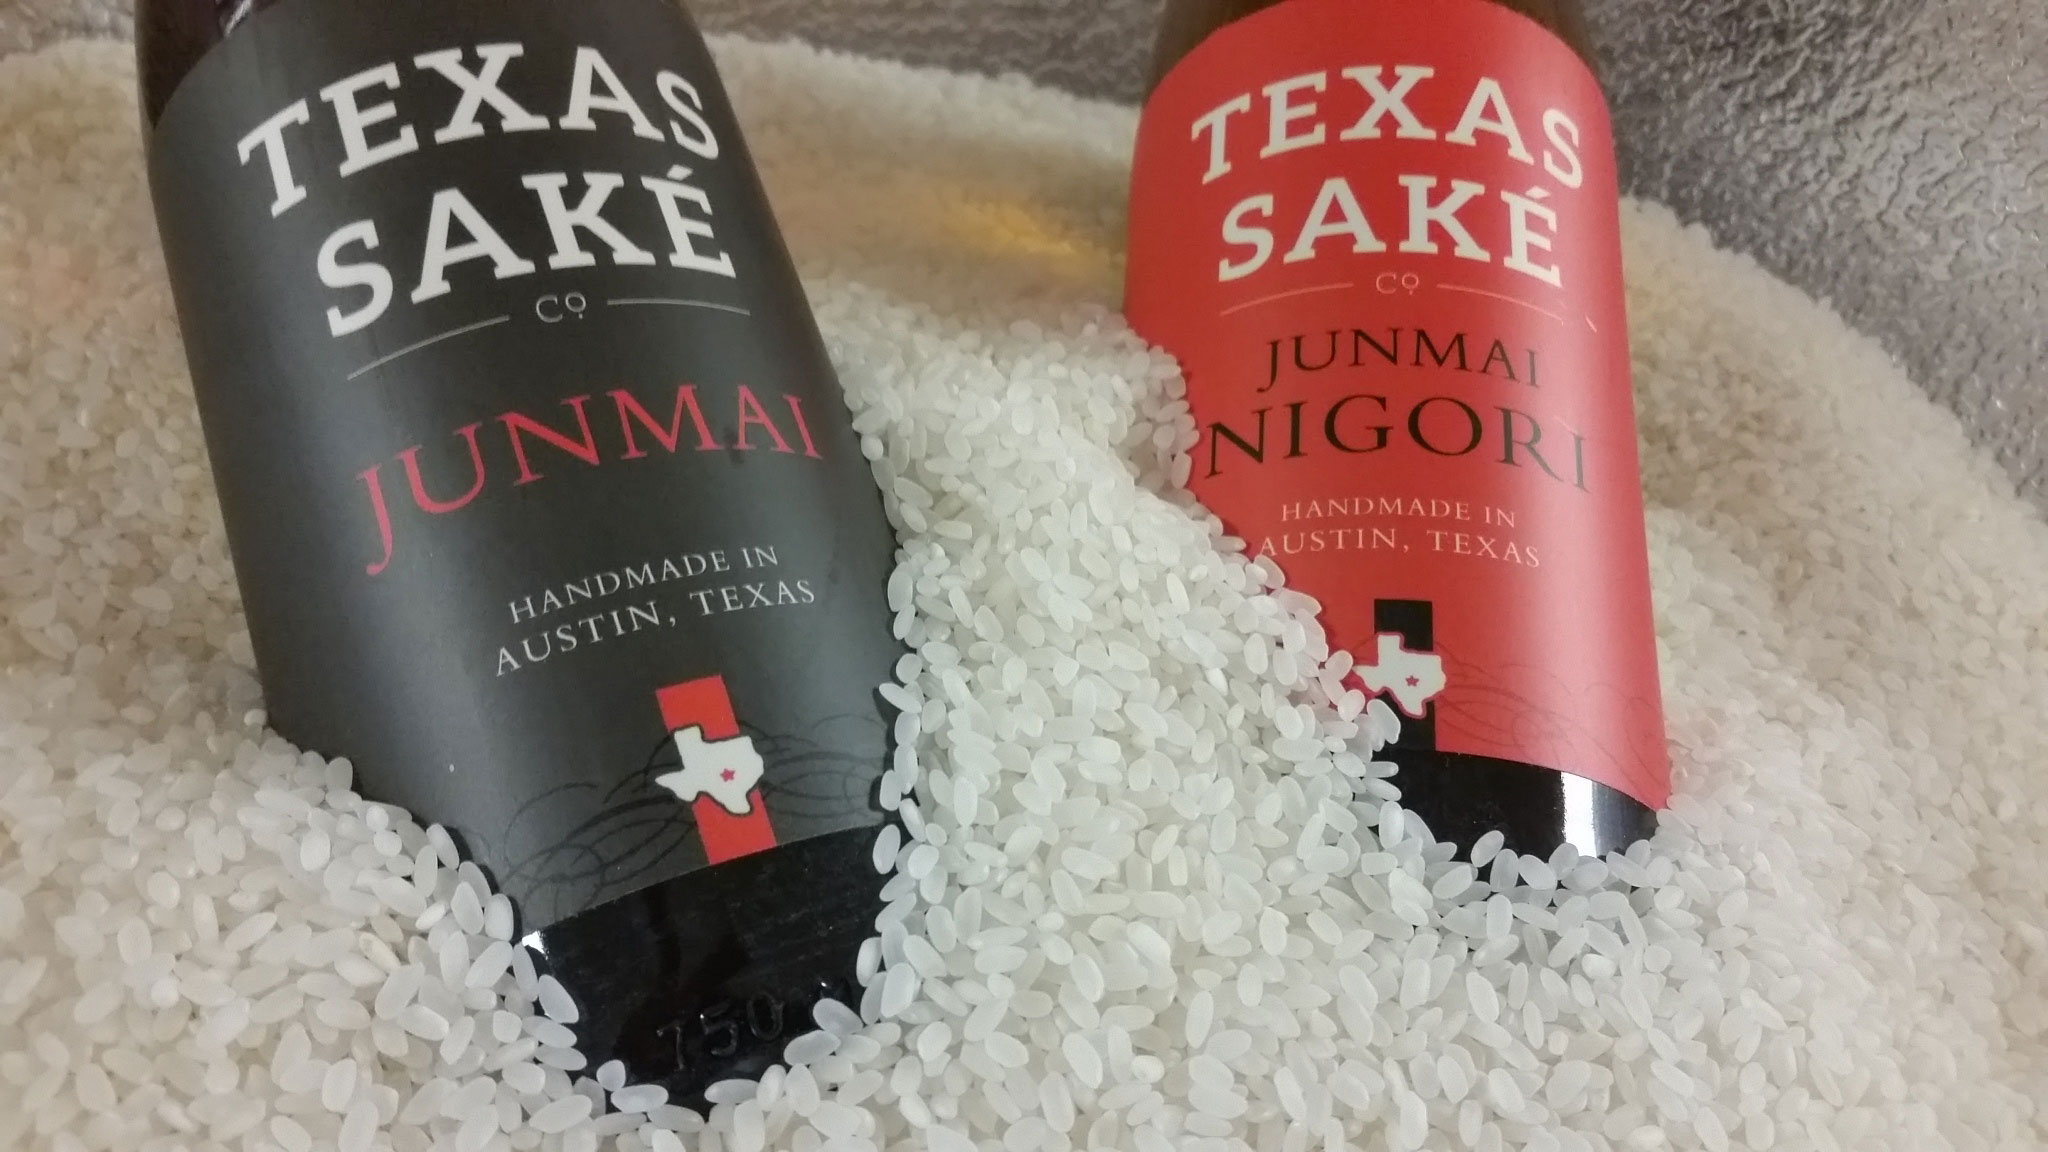 Two bottles of sake surrounded by a pile of white rice